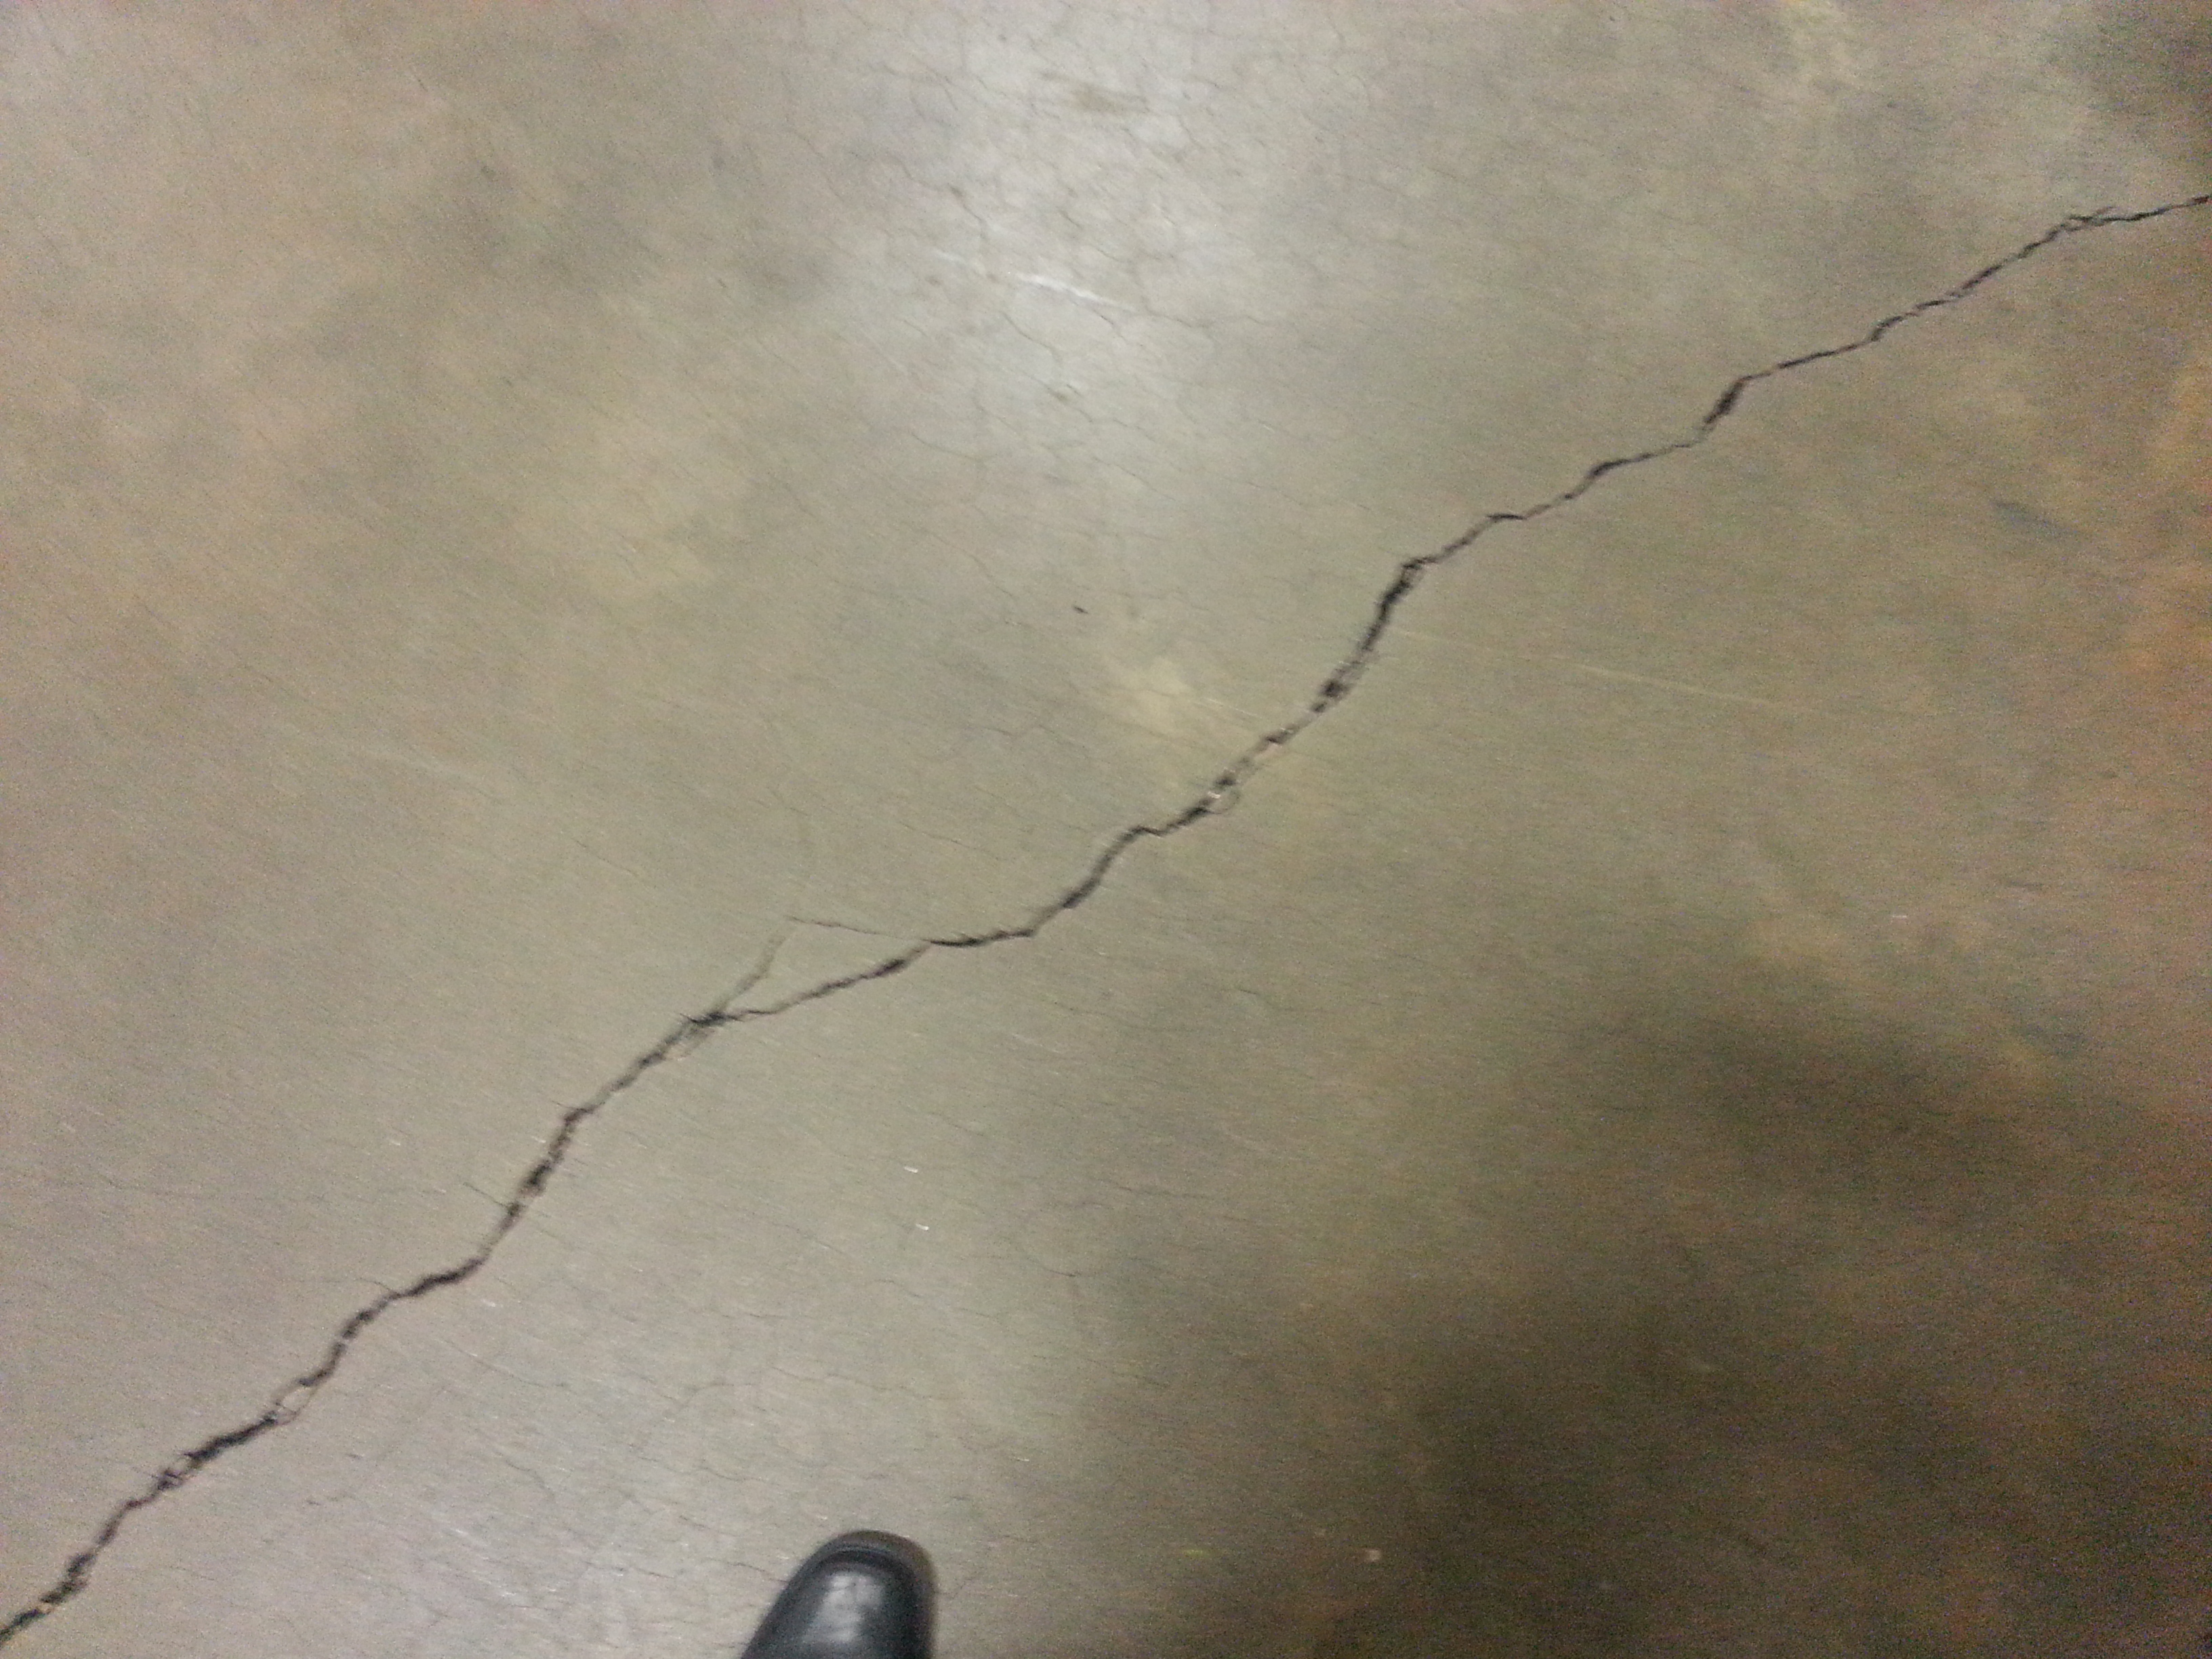 Concrete floor cracking and crazing